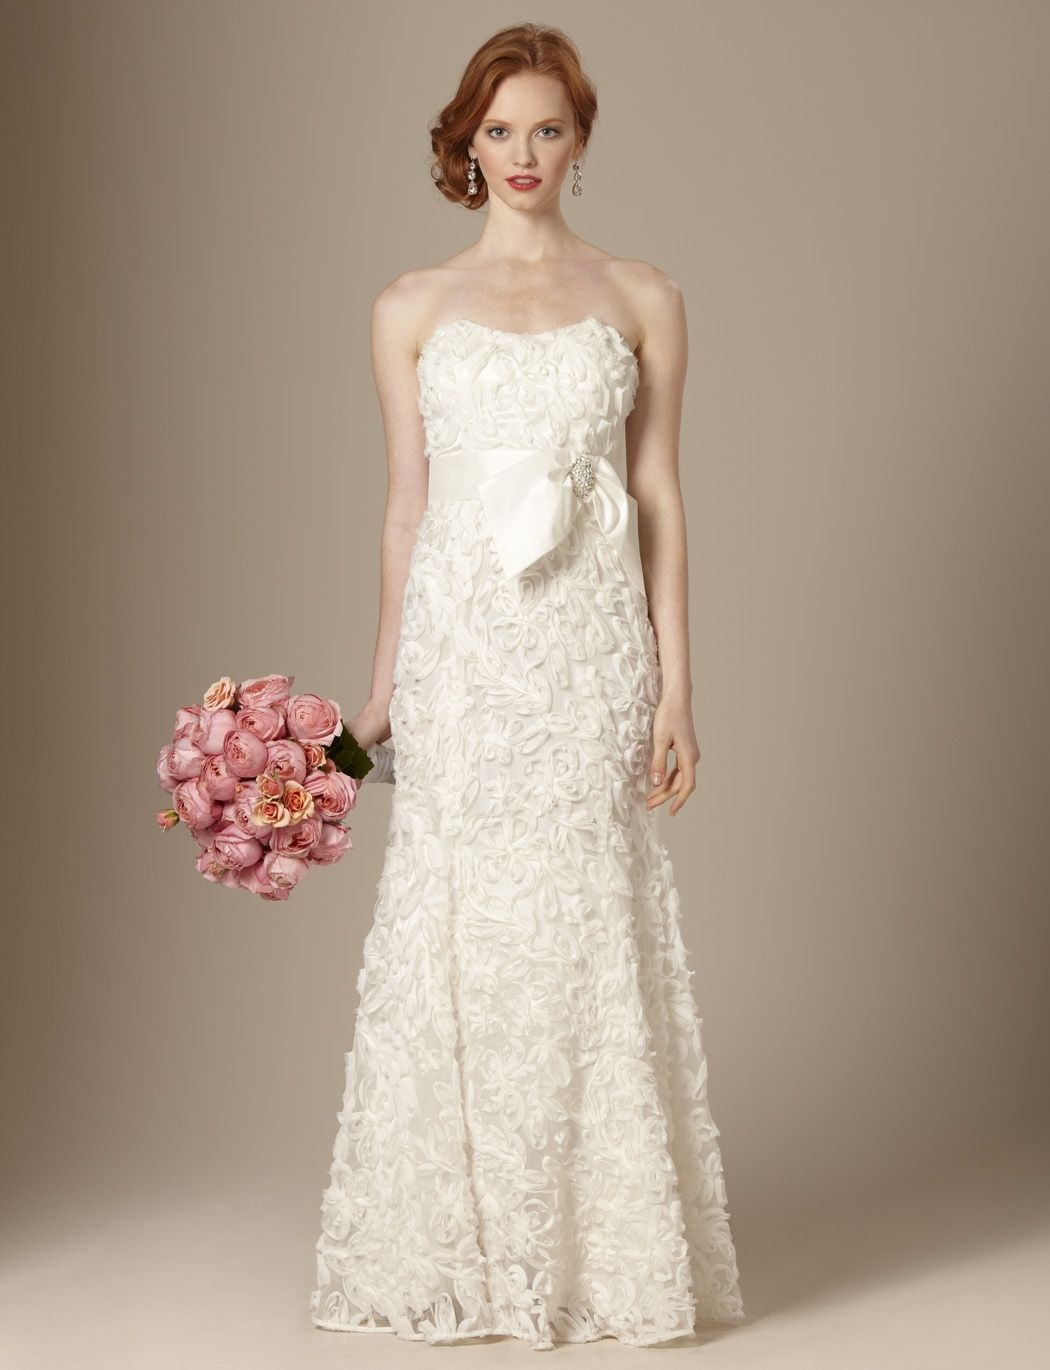 Weddings & Events for Women: Soutache Wedding Dress: The Limited